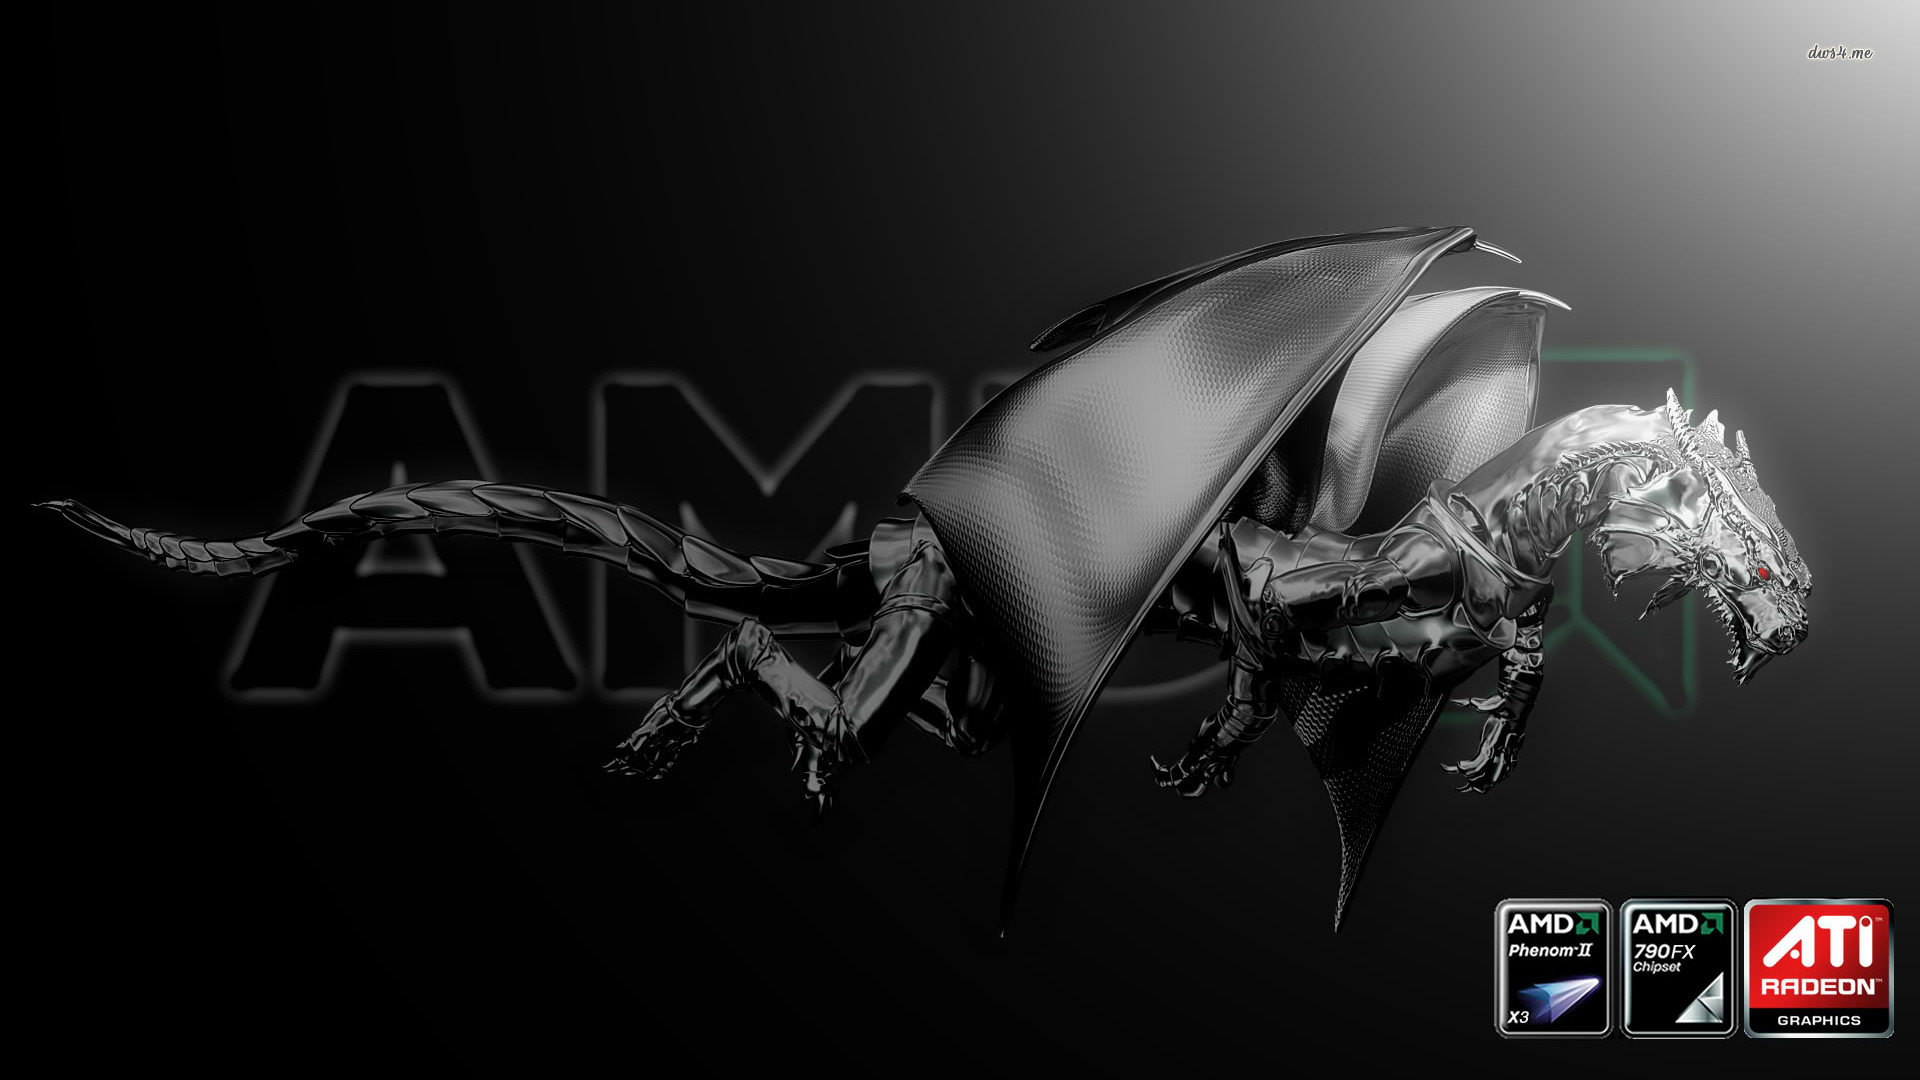 amd radeon wallpapers hd - photo #21